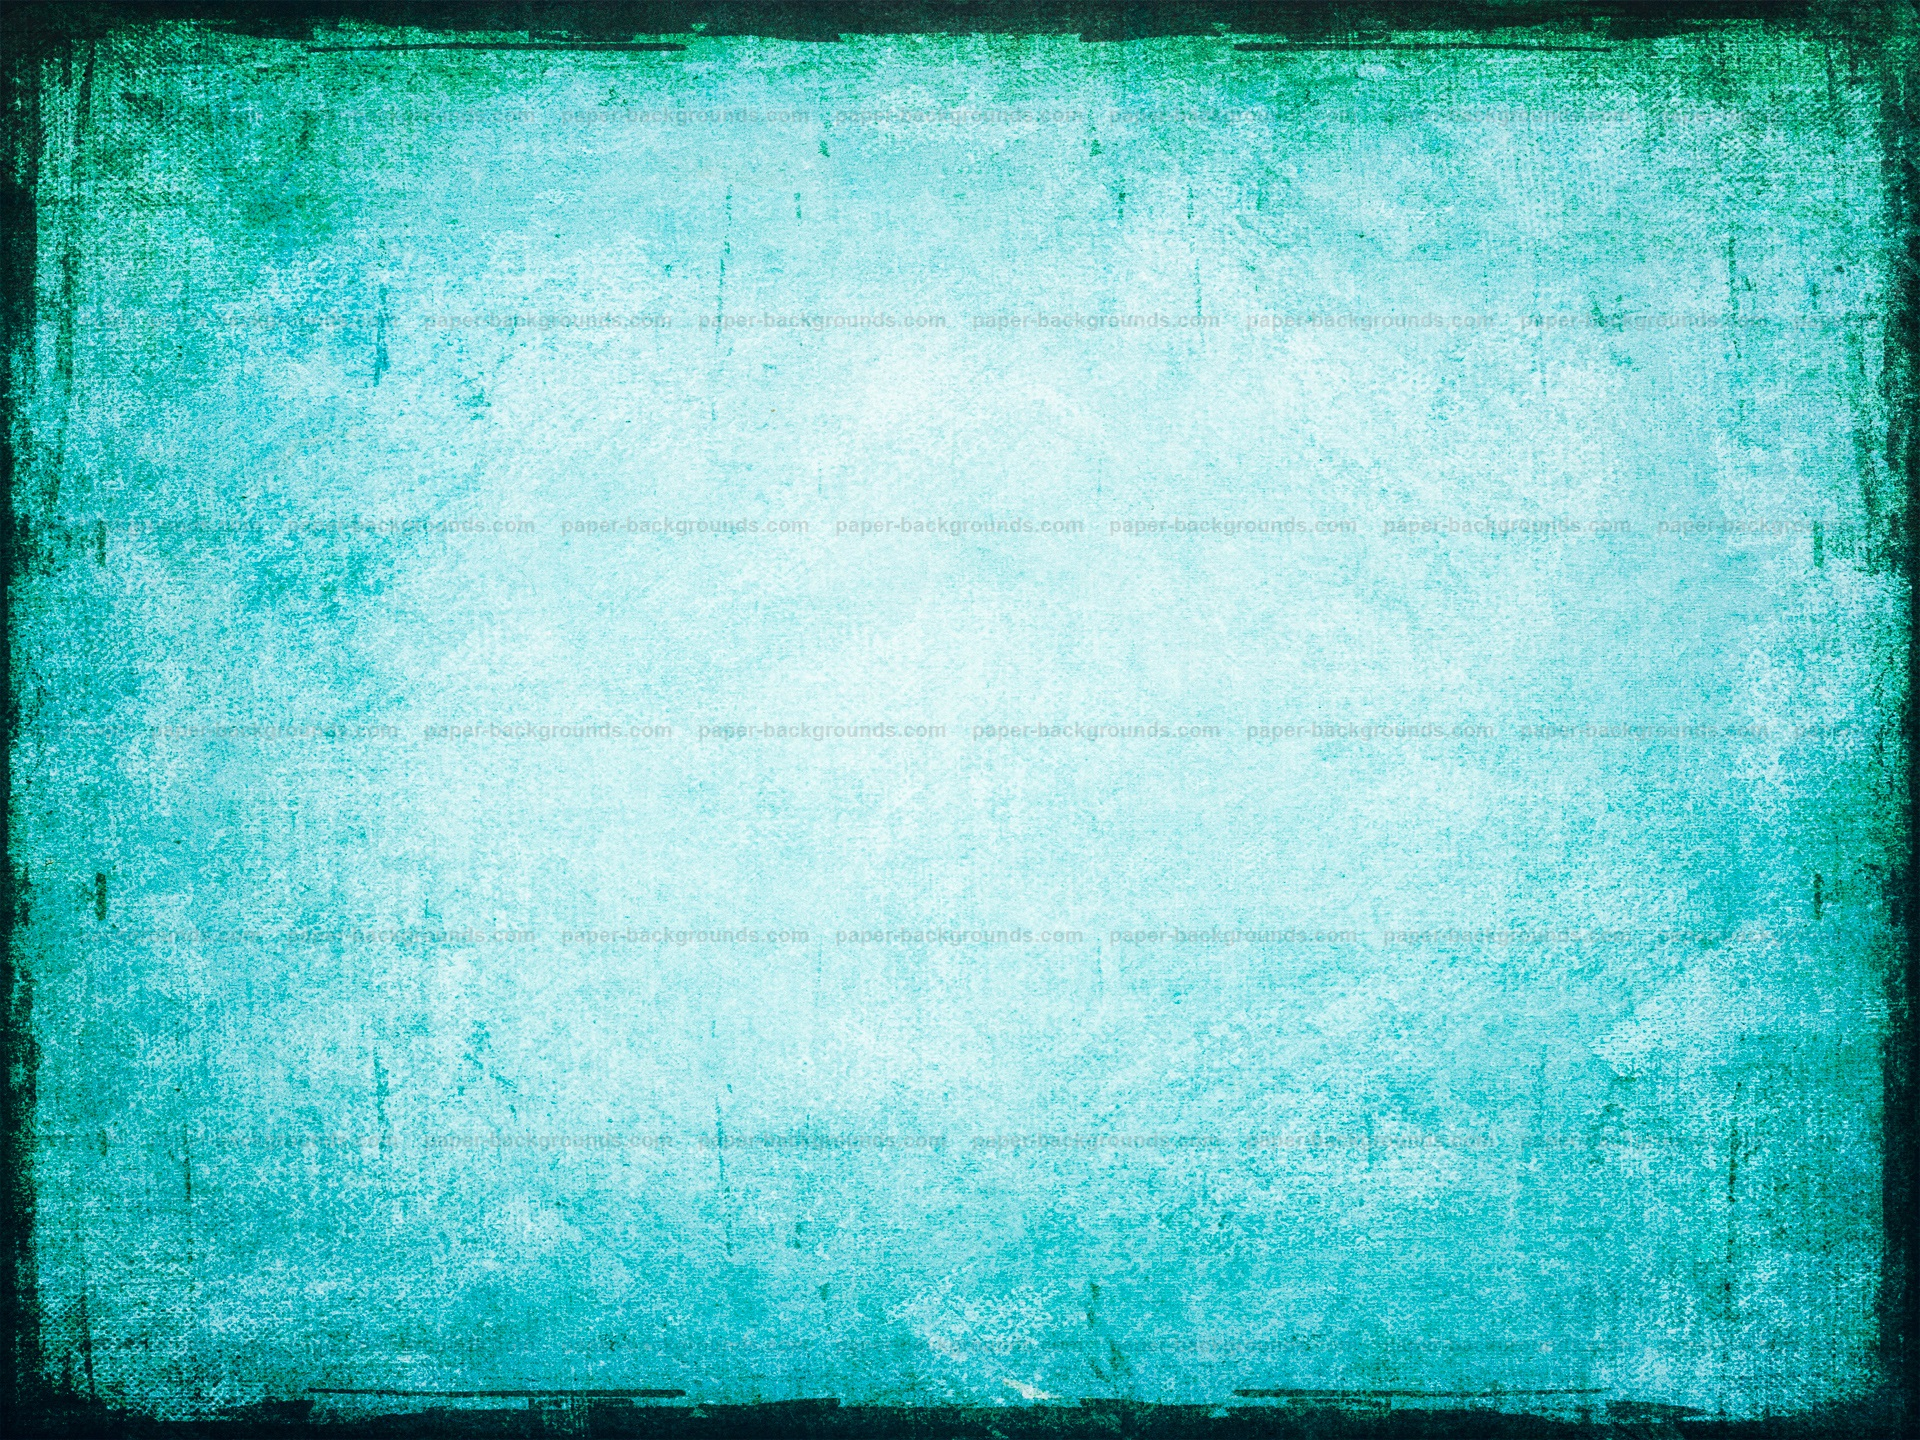 Paper Backgrounds | grunge-blue-painted-wall-background-hd